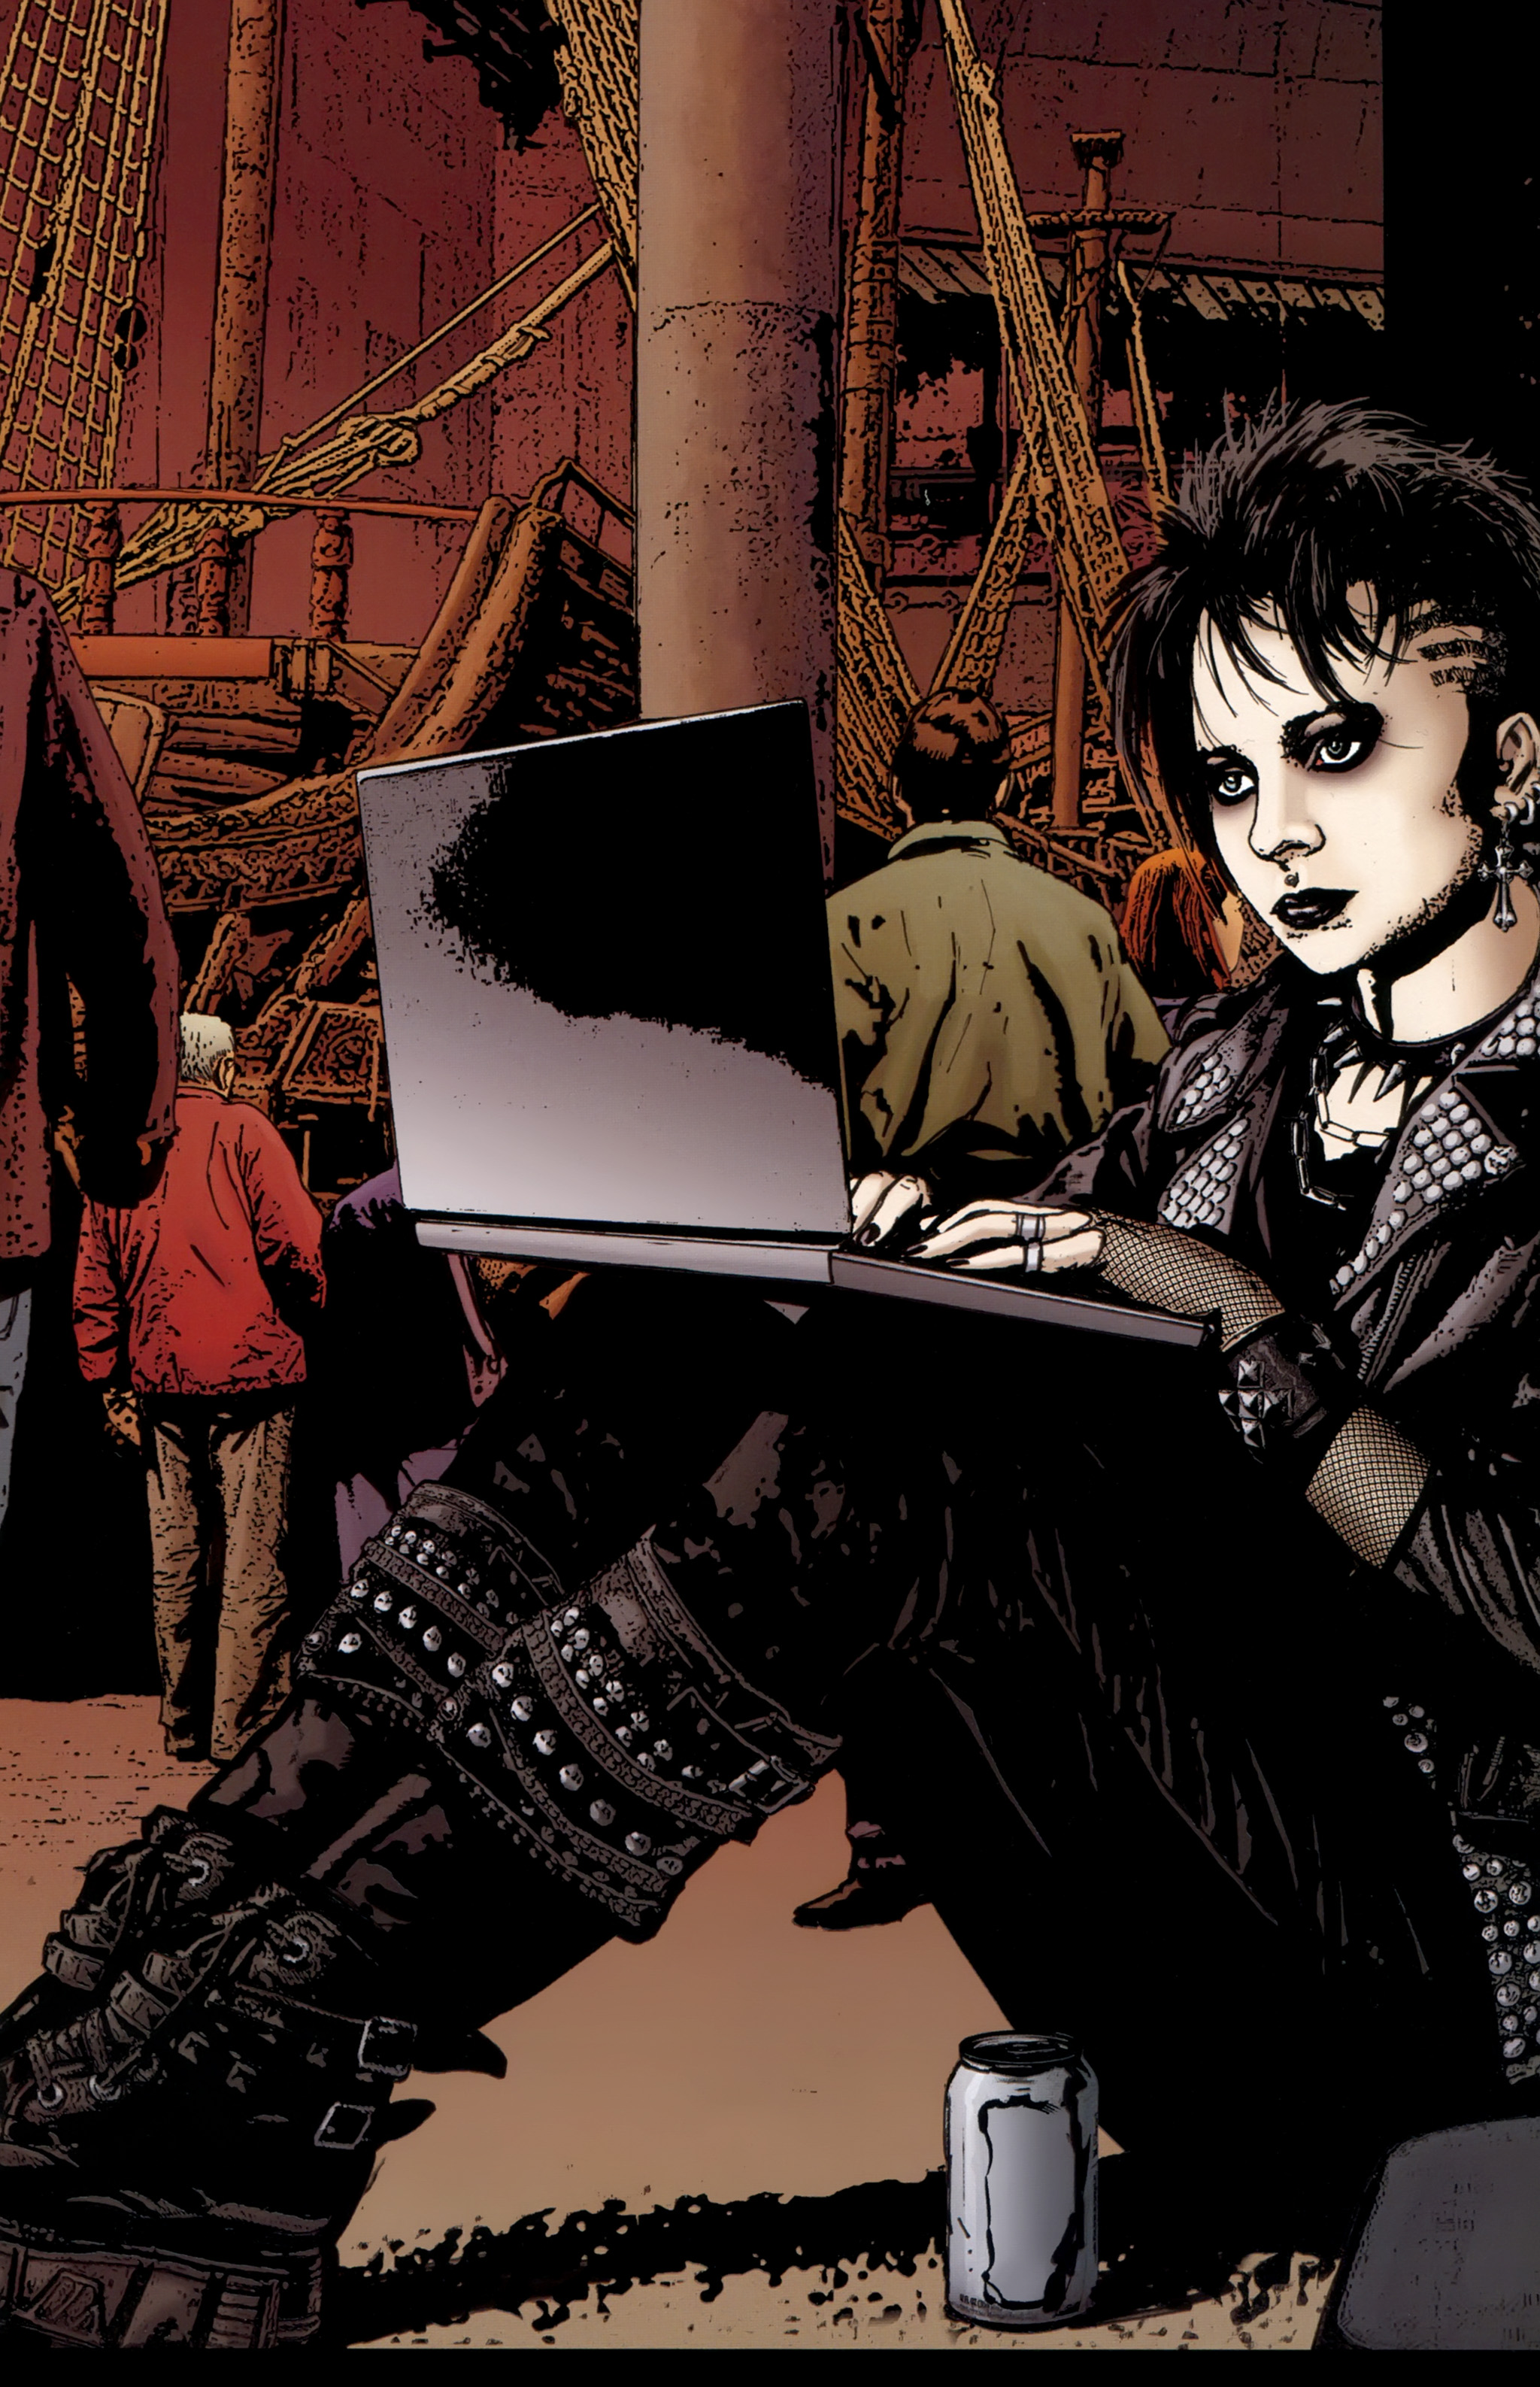 Read online The Girl With the Dragon Tattoo comic -  Issue # TPB 1 - 94